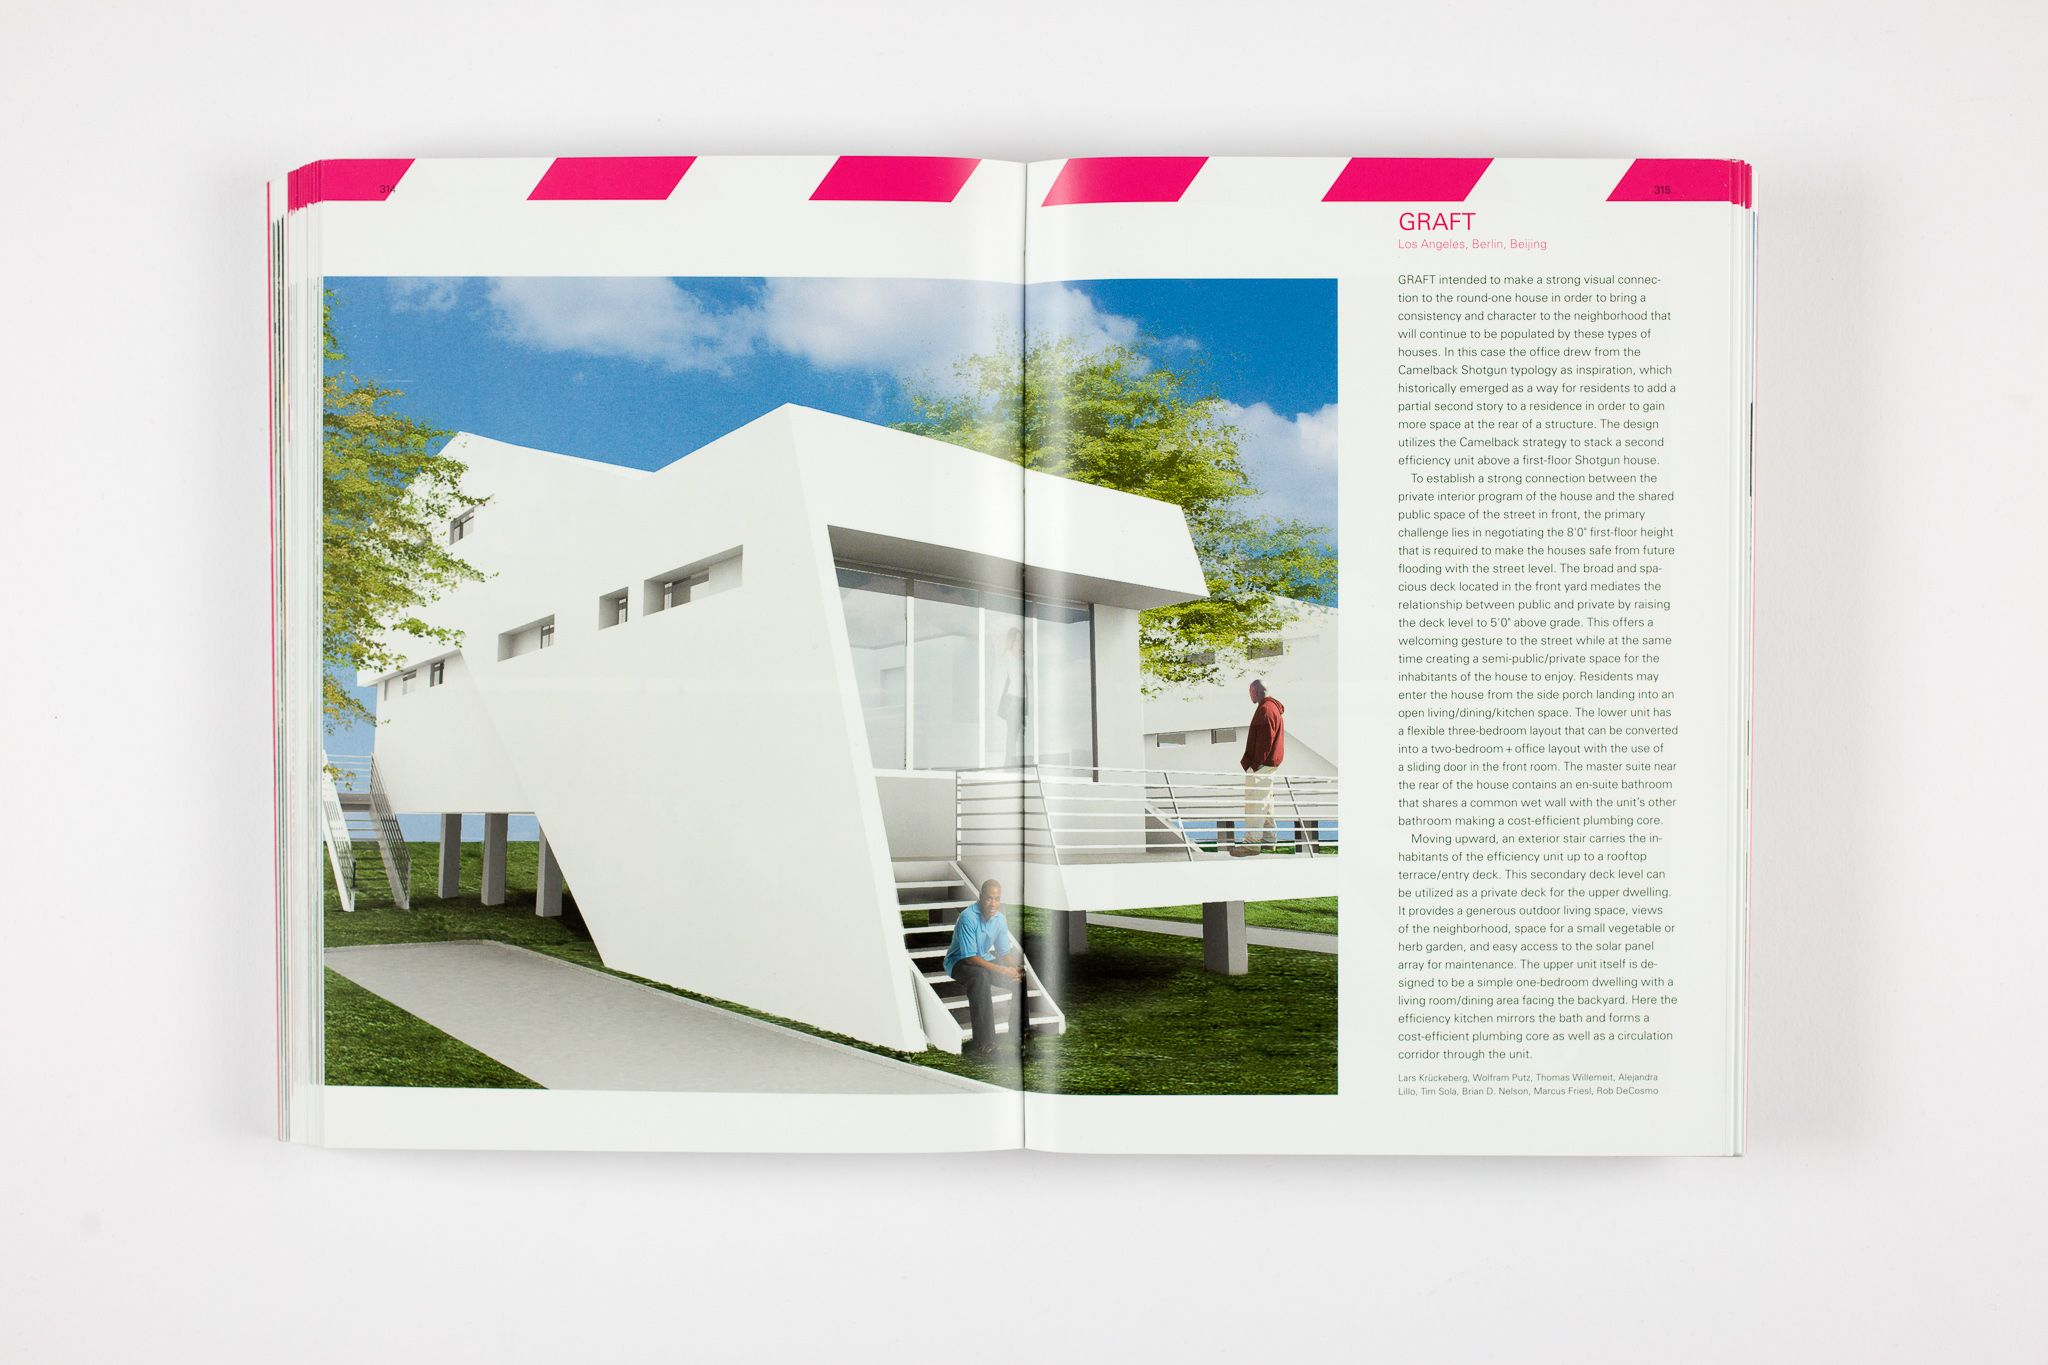 This book documents the process with numerous photos, plans, and renderings as well as written commentary from the architects. Besides Brad Pitt's foreword in which he writes of his motivations to bring the Make It Right Foundation to life, the book also includes essays regarding the entire design process and the cradle-to-cradle concept. In addition, the 'Pink Project', a Land Art awareness installation from Brad Pitt and GRAFT, generated interest in the international media thereby helping to attract financing for the MIR housing project.         This book can also serve as an instruction manual for people and other initiatives confronted with similar circumstances. MIR is currently working to extend their aid programs to other areas in need across the USA.